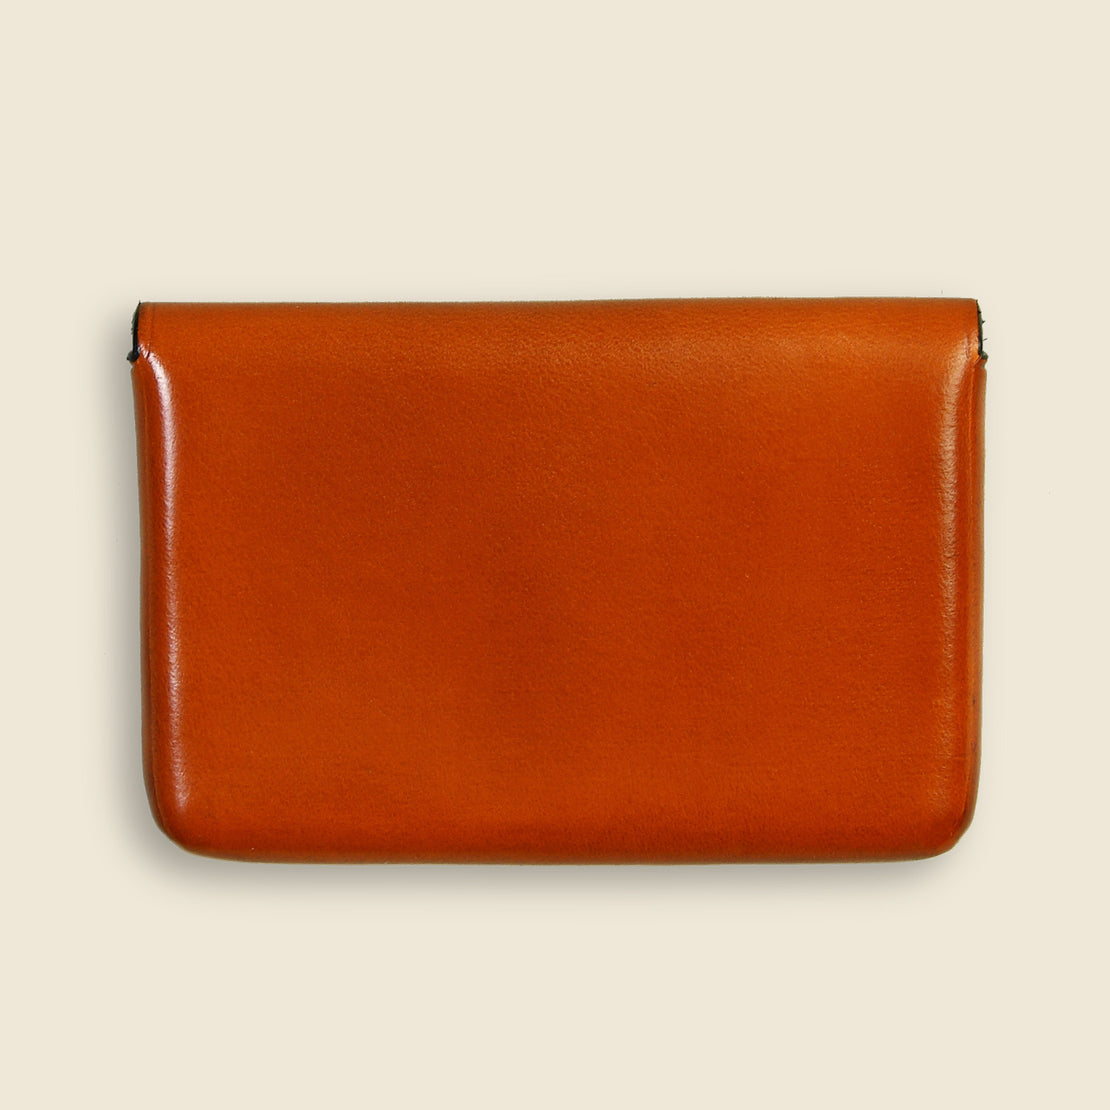 Business Card Holder - Orange - Il Bussetto - STAG Provisions - Accessories - Wallets